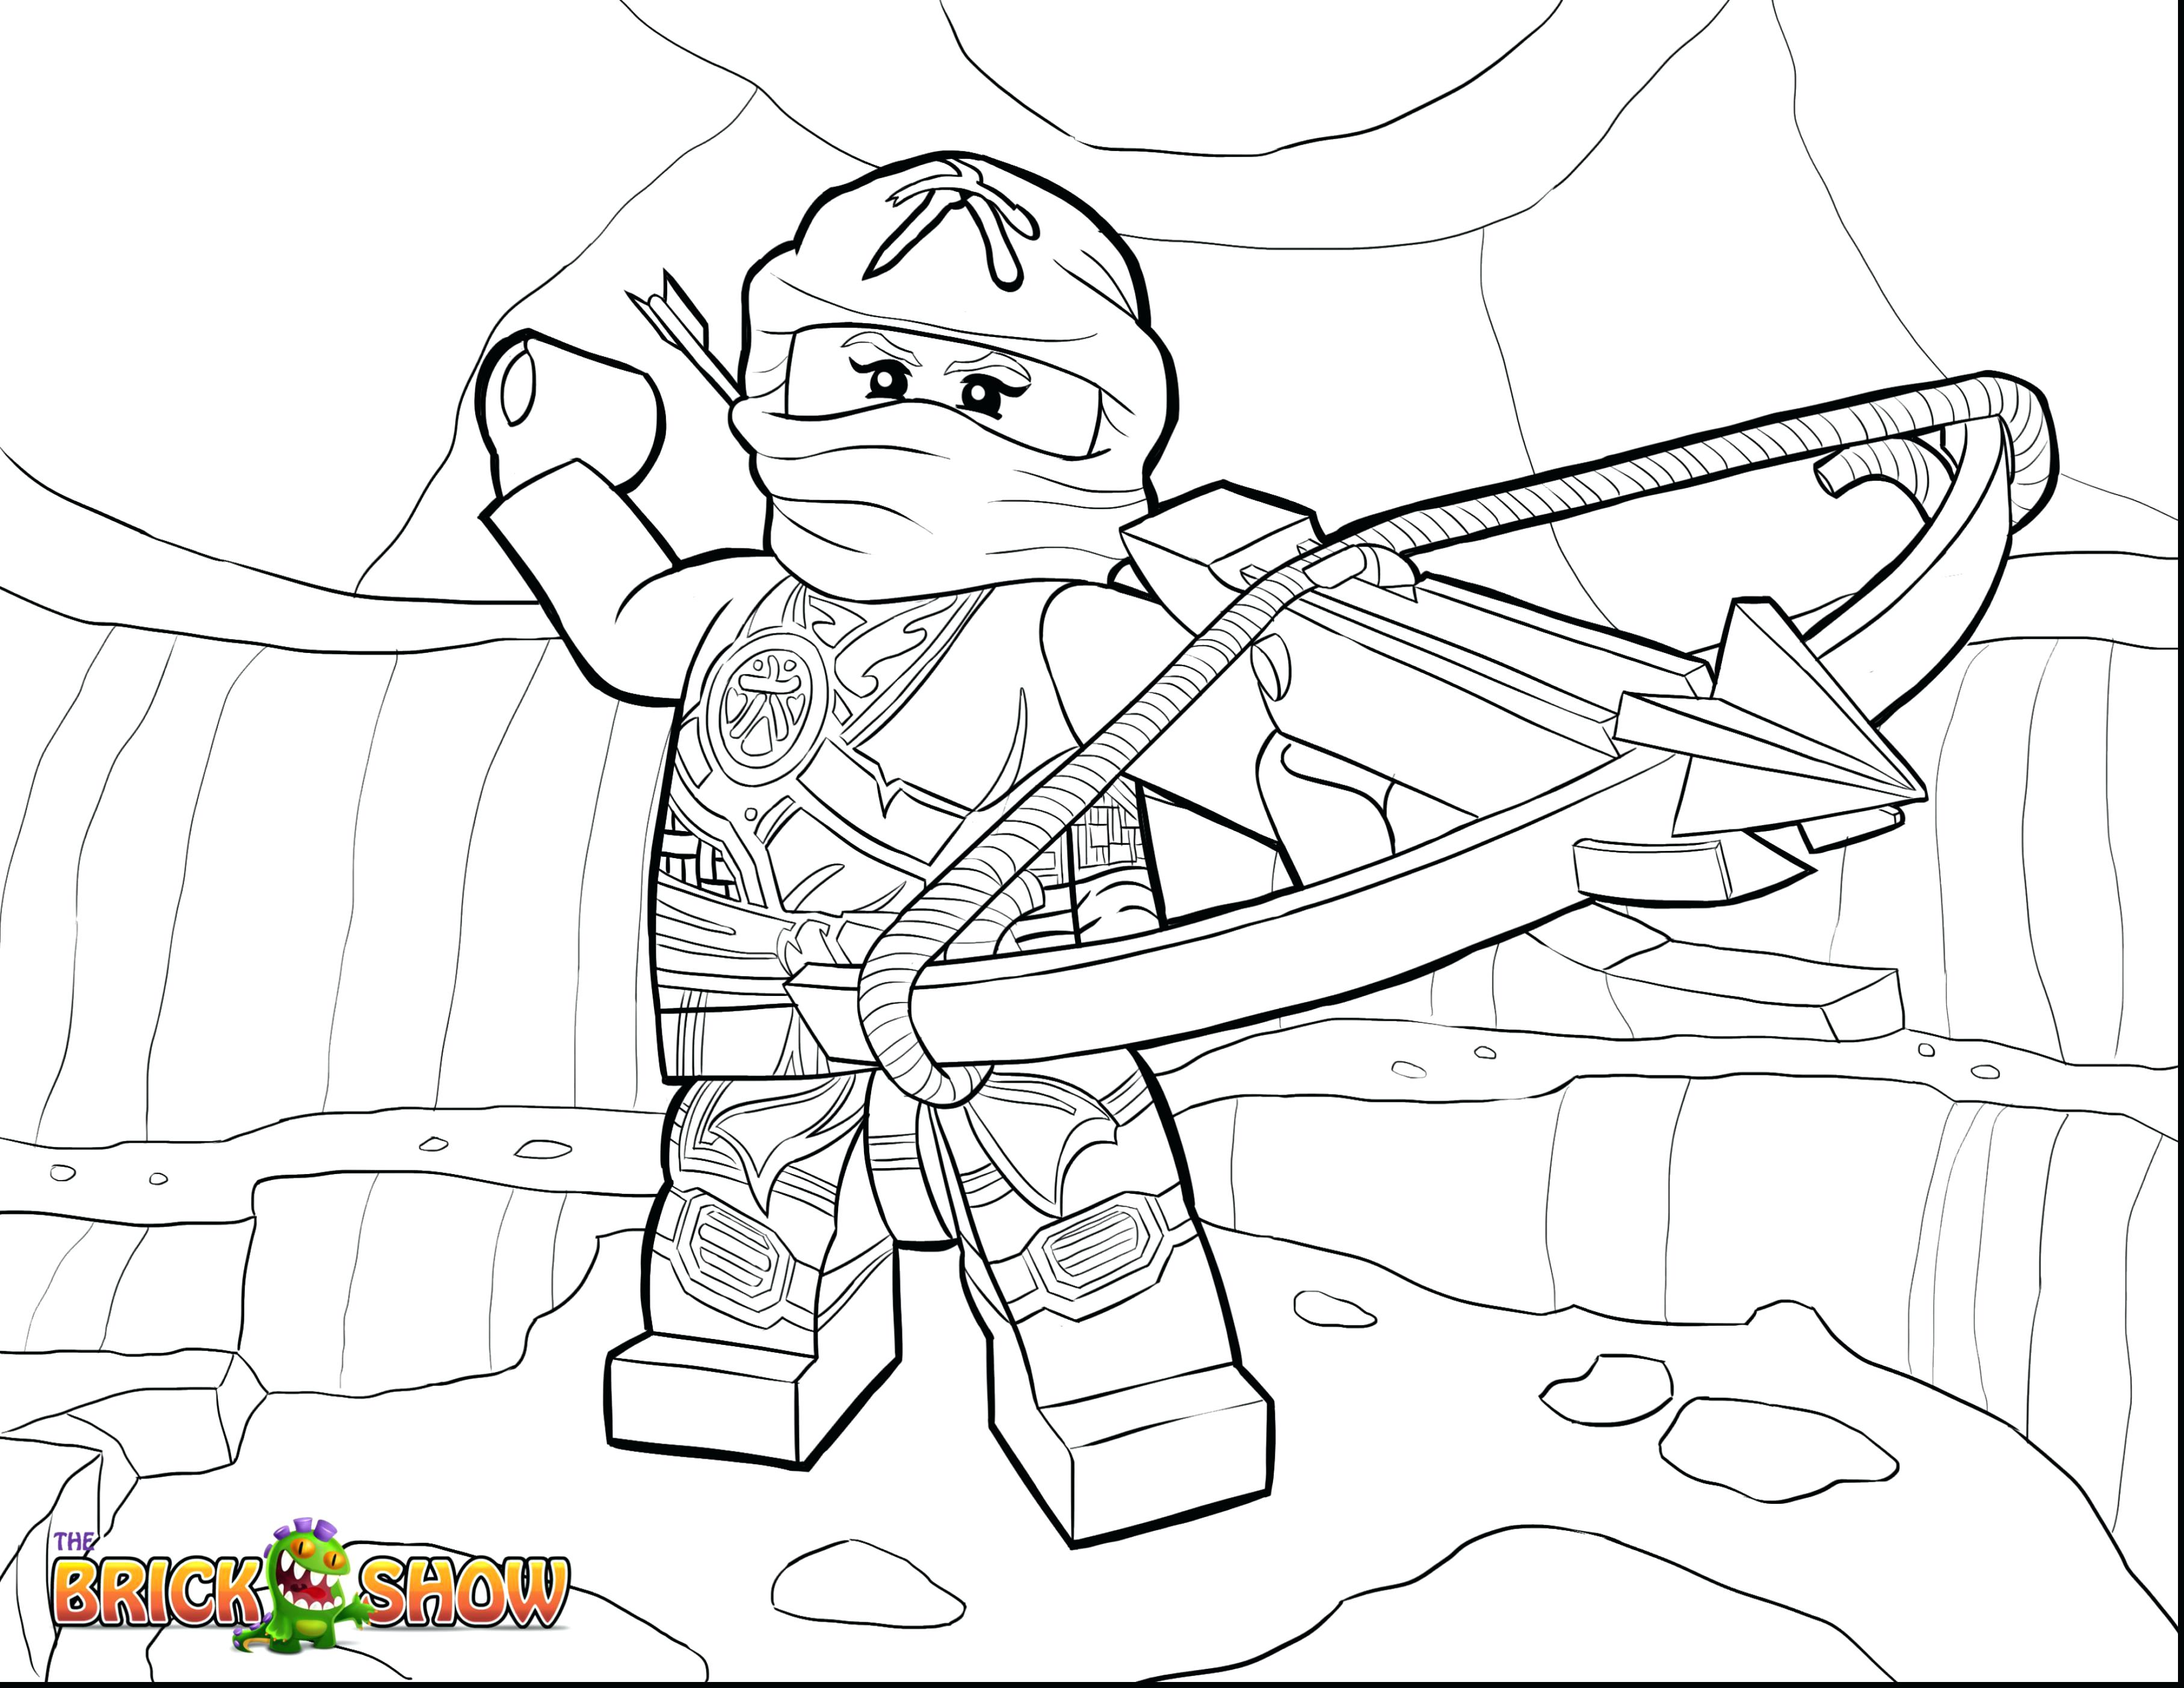 3630x2805 Best Of Lego Ninjago Coloring Pages Kai Zx